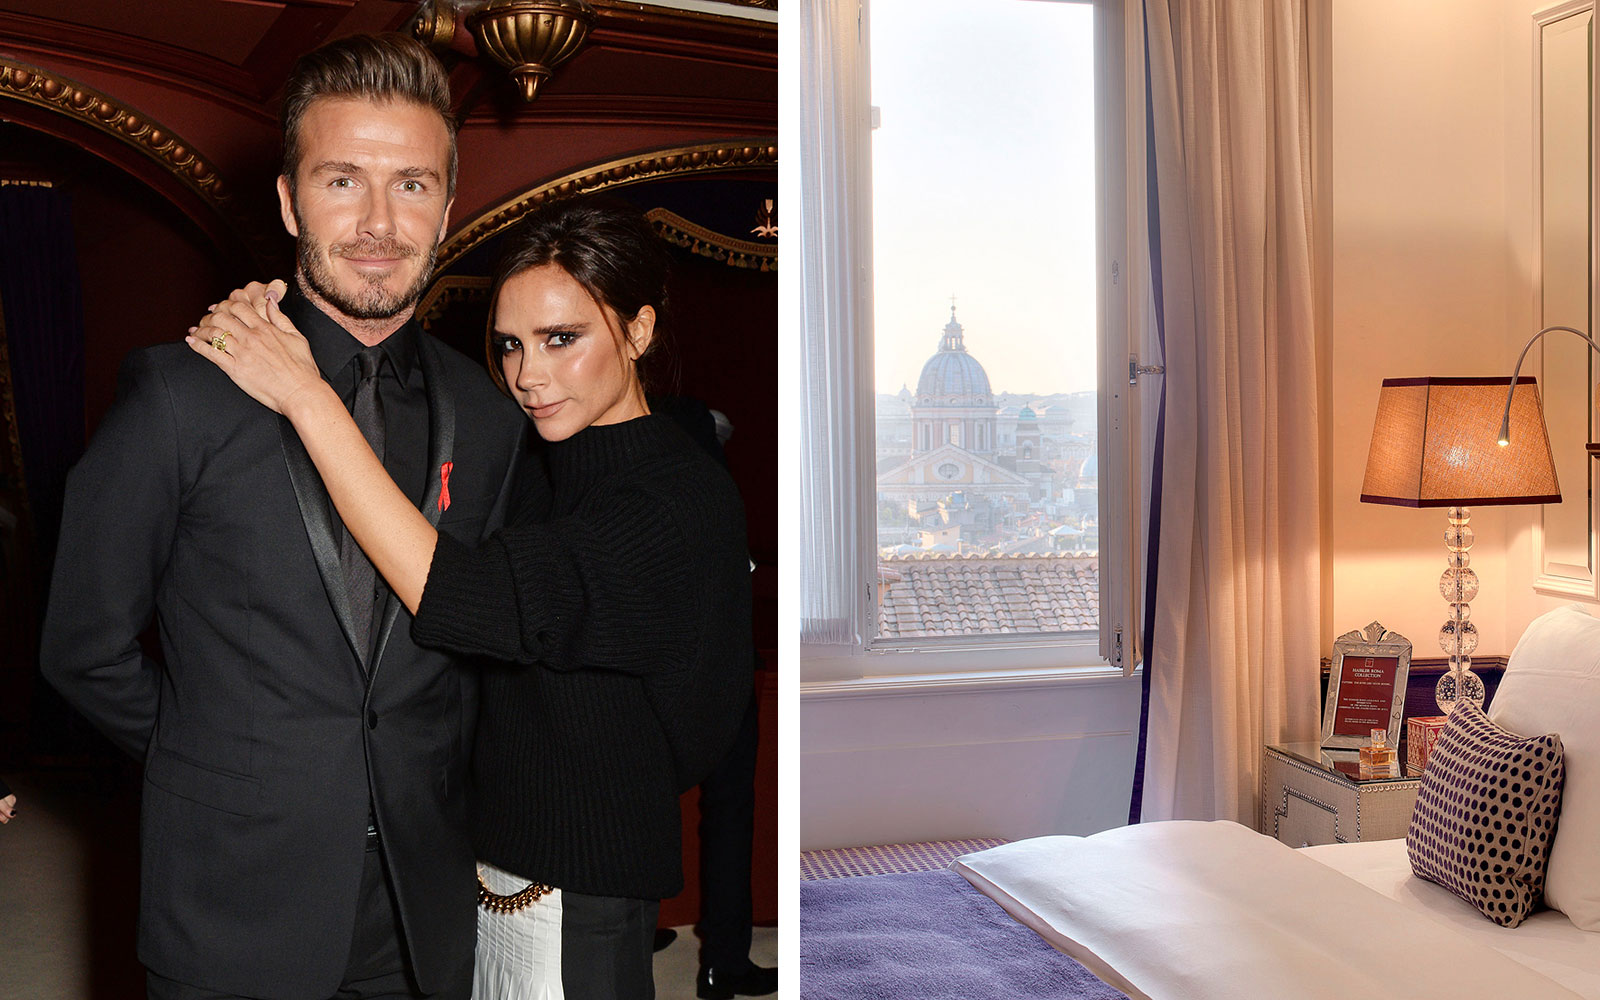 Hotels for Celebrity Sightings: Hotel Hassler, Rome, Italy